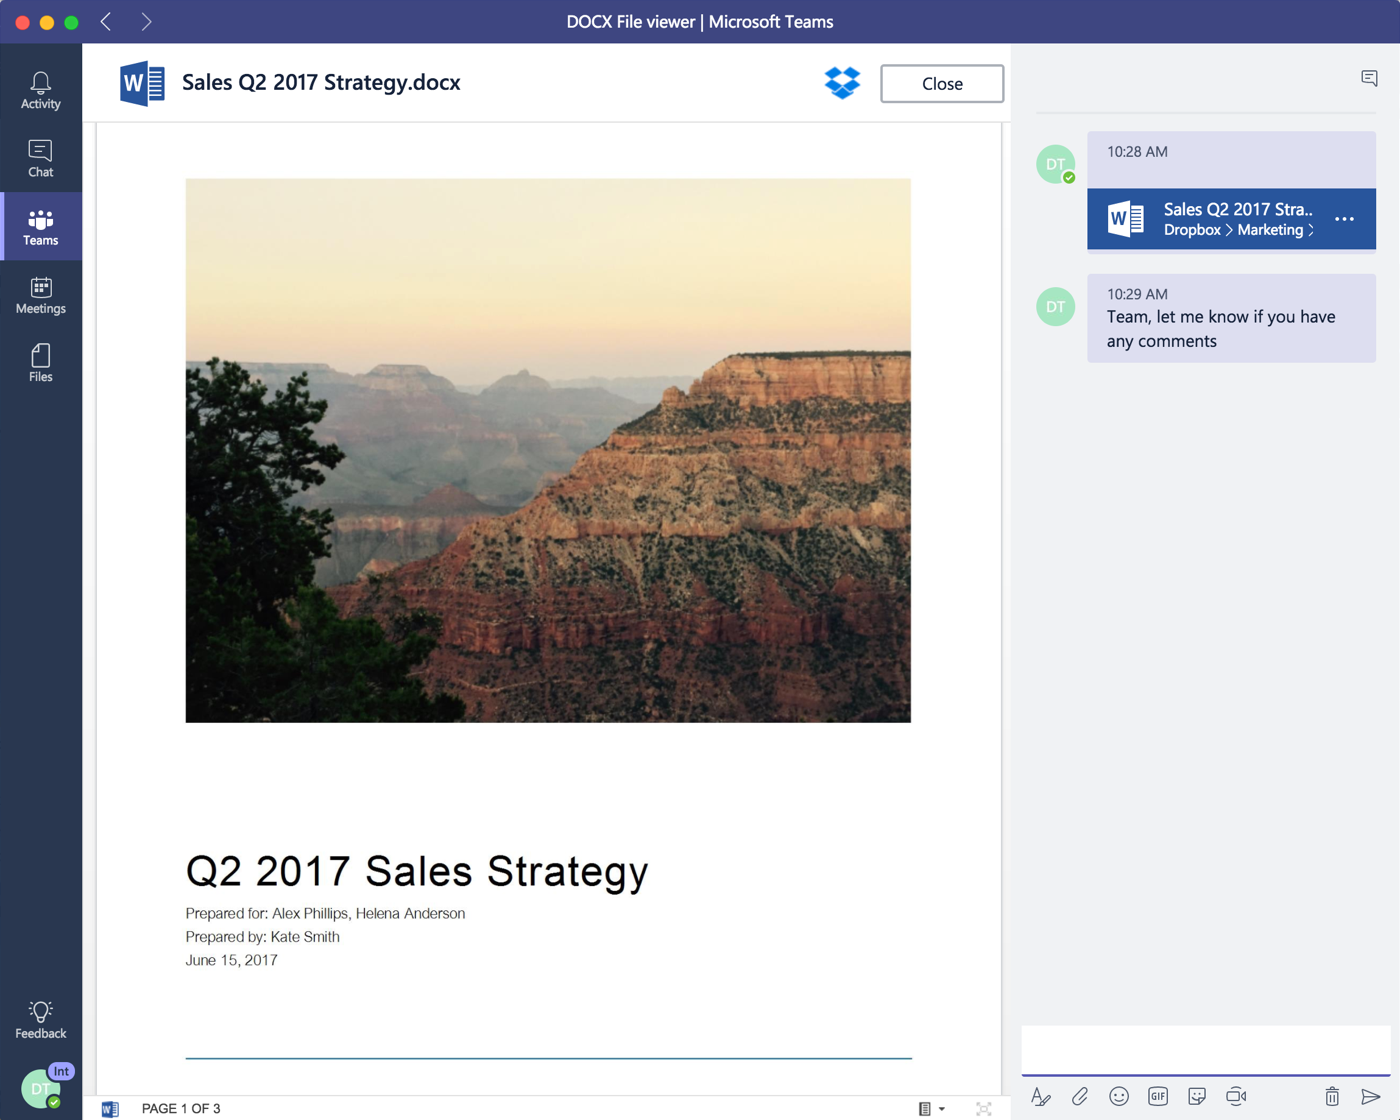 Screenshot showing Microsoft Teams integration with Dropbox